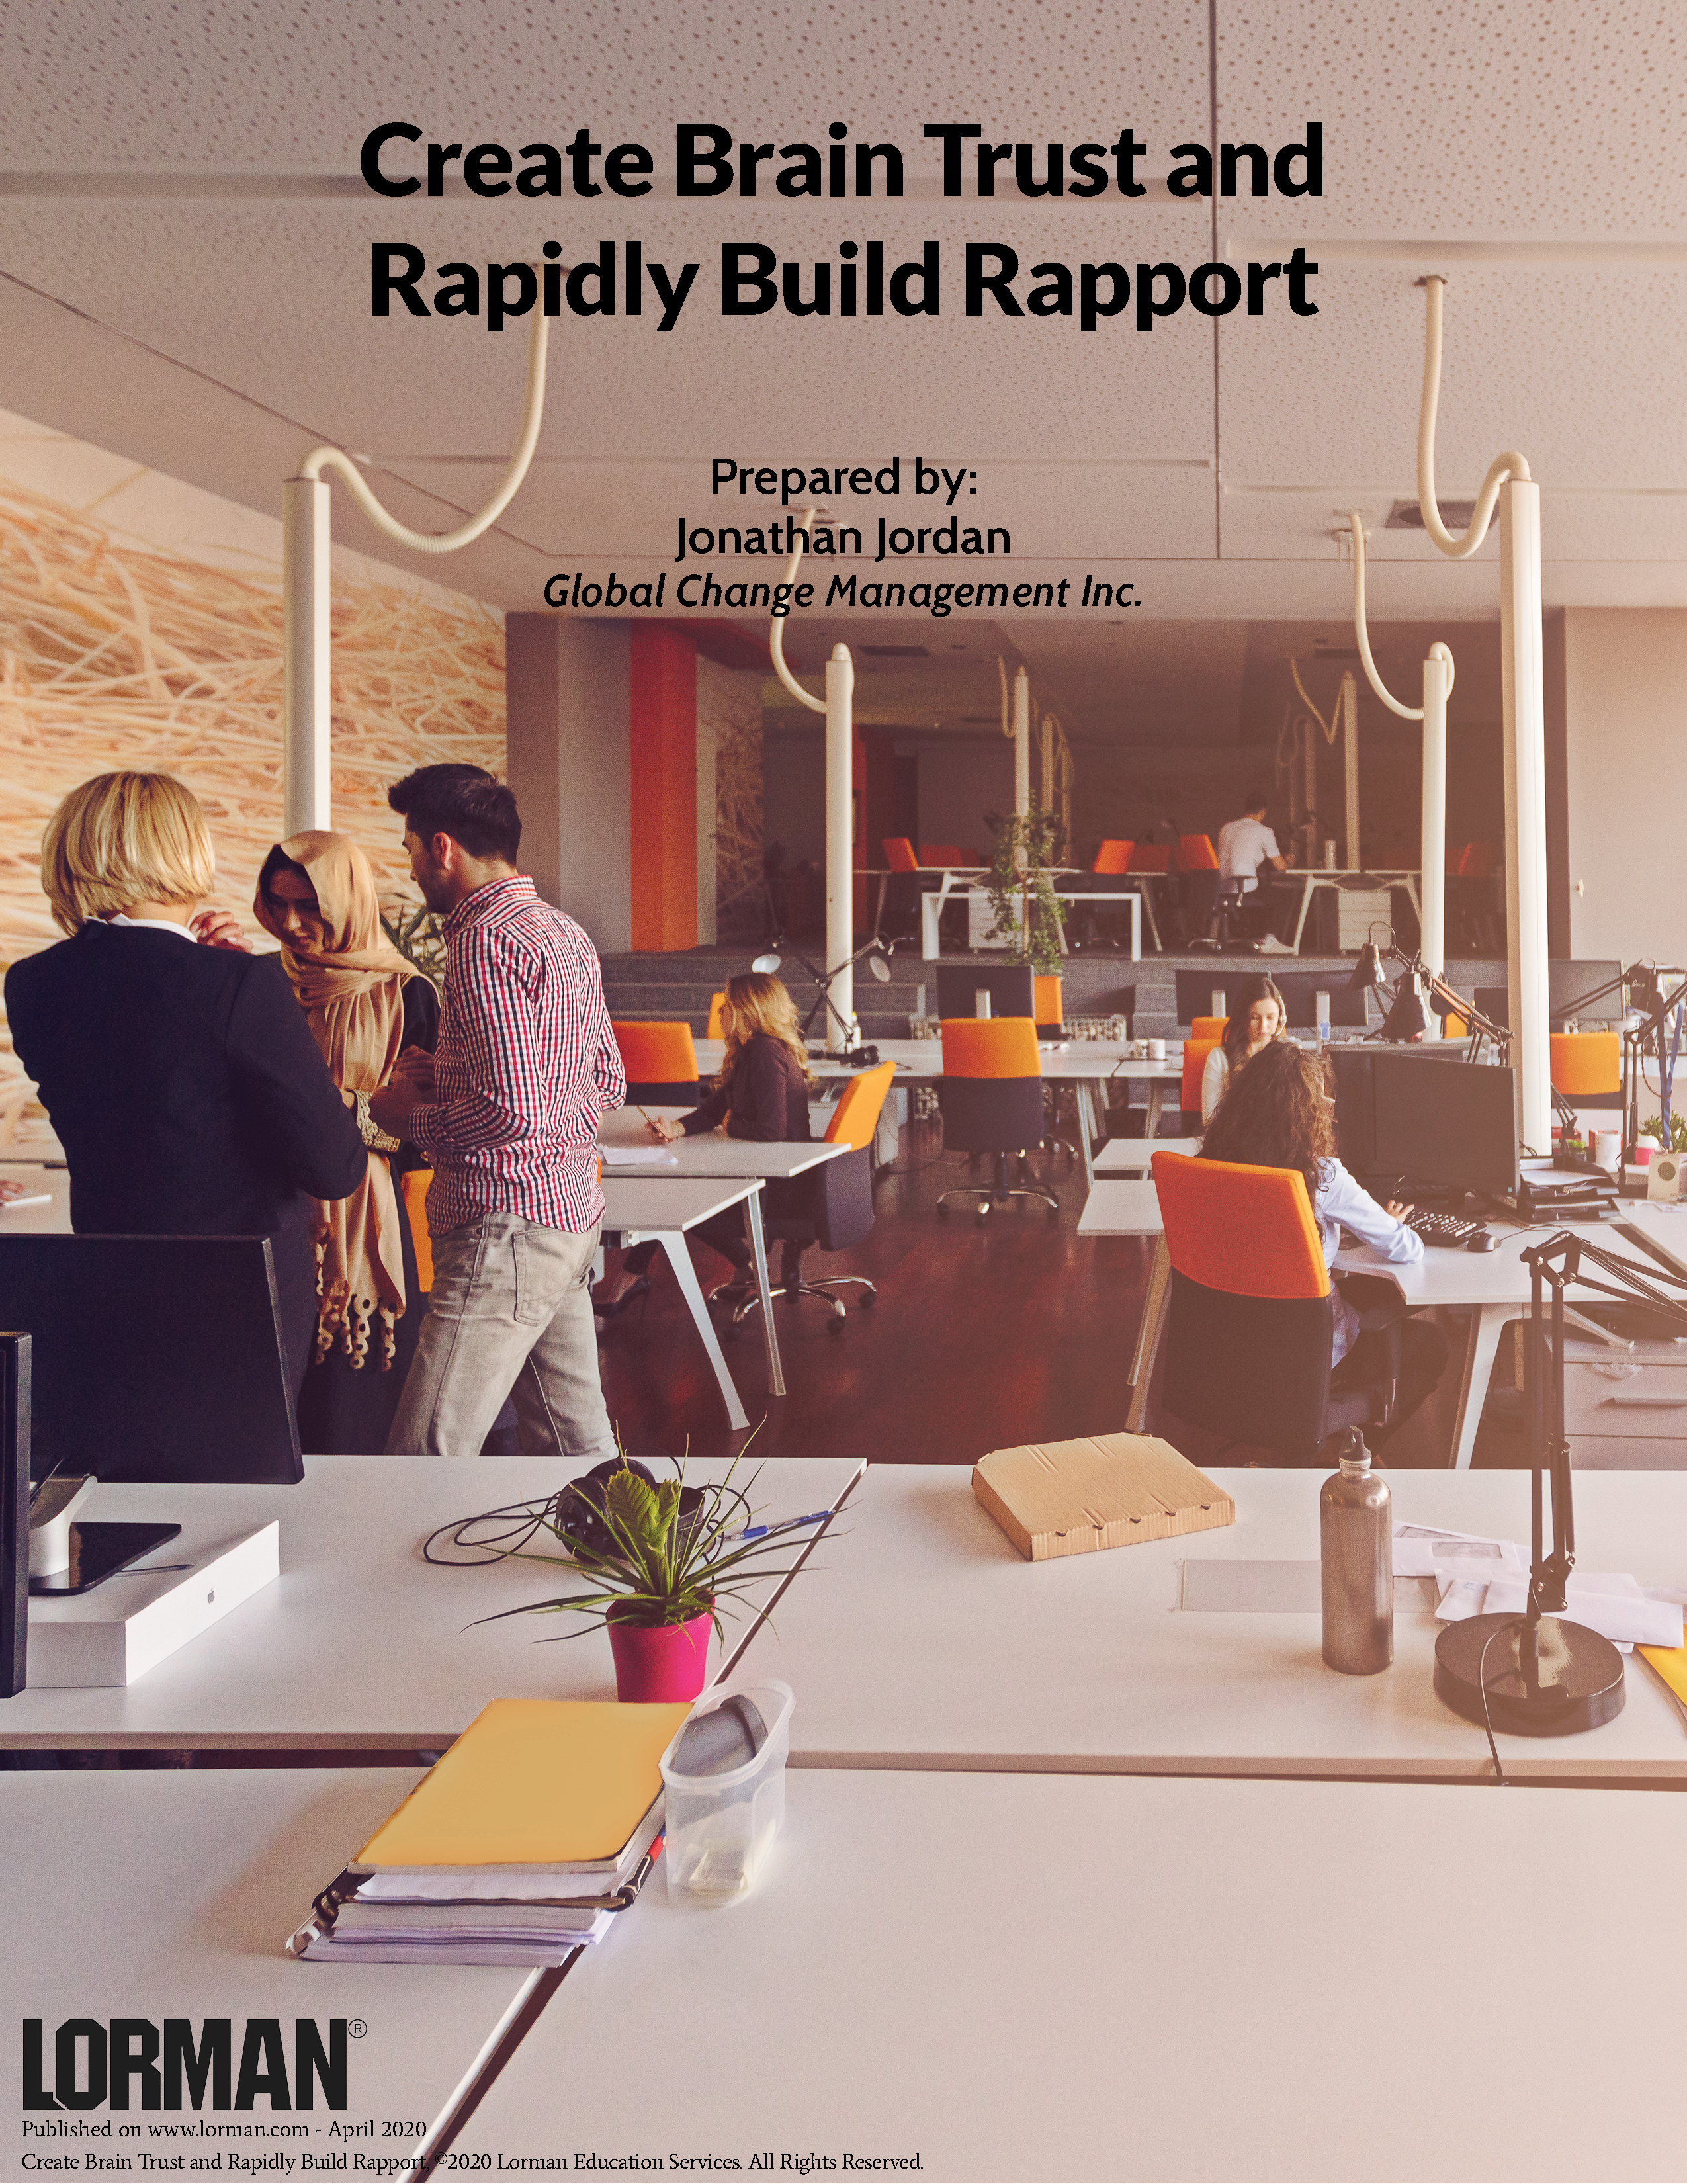 Create Brain Trust and Rapidly Build Rapport